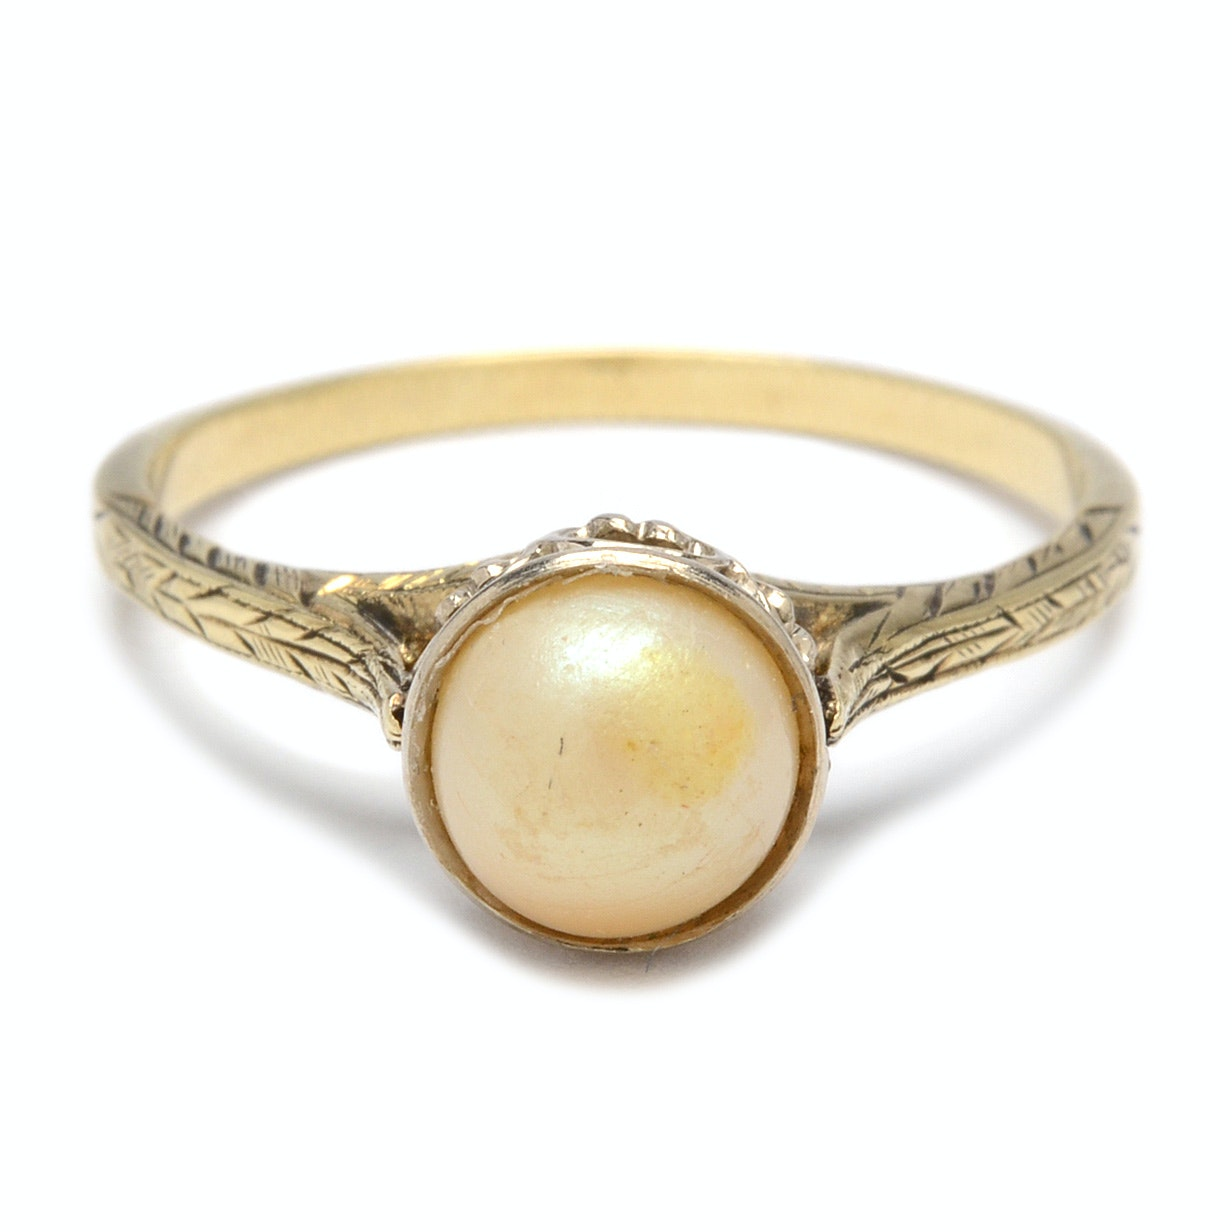 14K and 10K Two Tone Gold Ring with Imitation Pearl